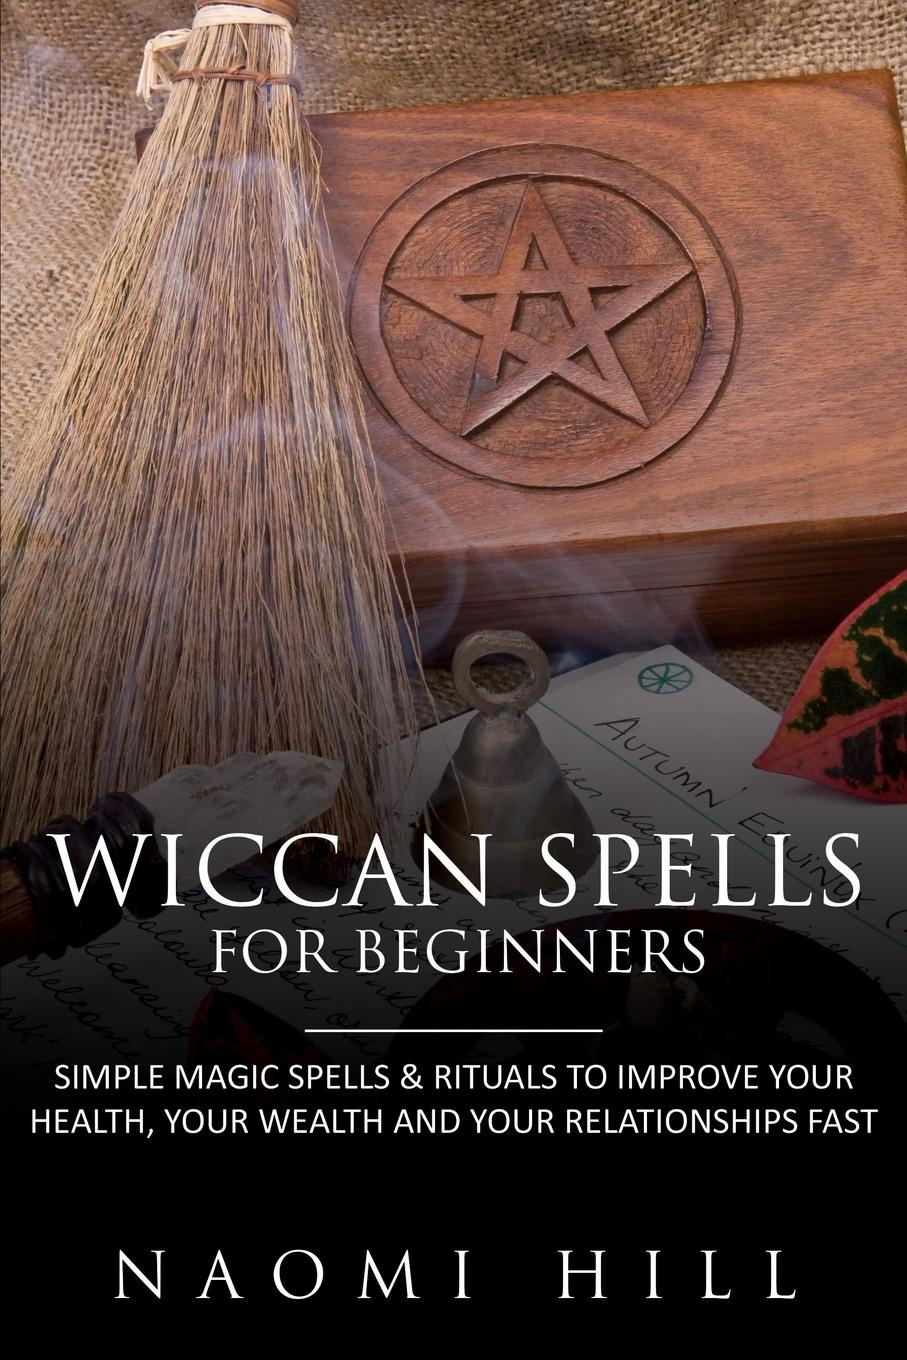 Hill Naomi Wiccan Spells for Beginners. Simple Magic Spells & Rituals to Improve Your Health, Your Wealth and Your Relationships Fast